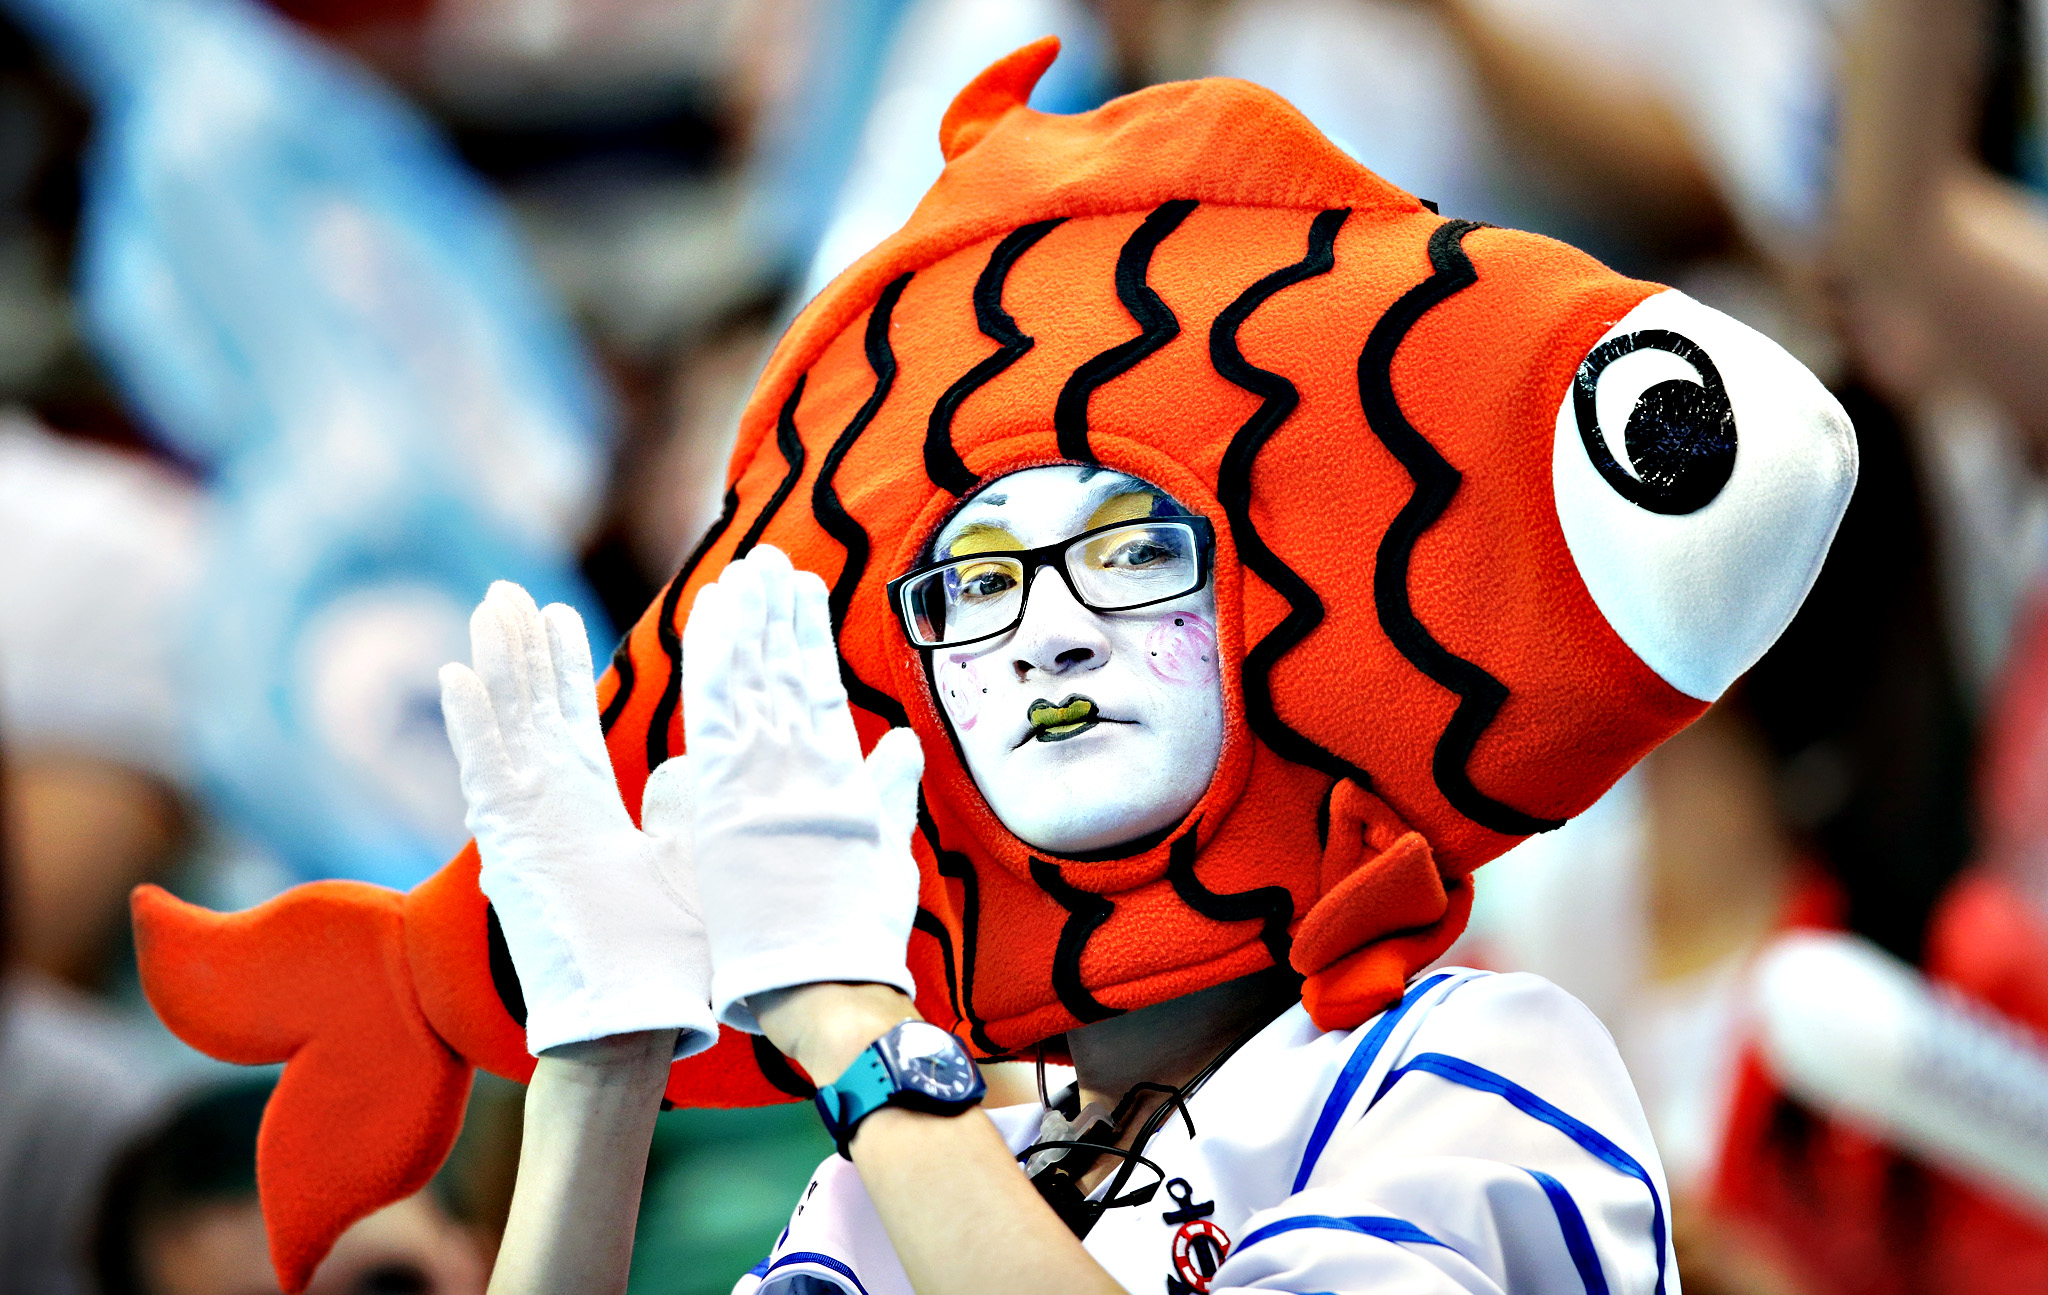 A spectator watches the morning heats at the Swimming World Championships in Kazan, Russia, Monday, Aug. 3, 2015